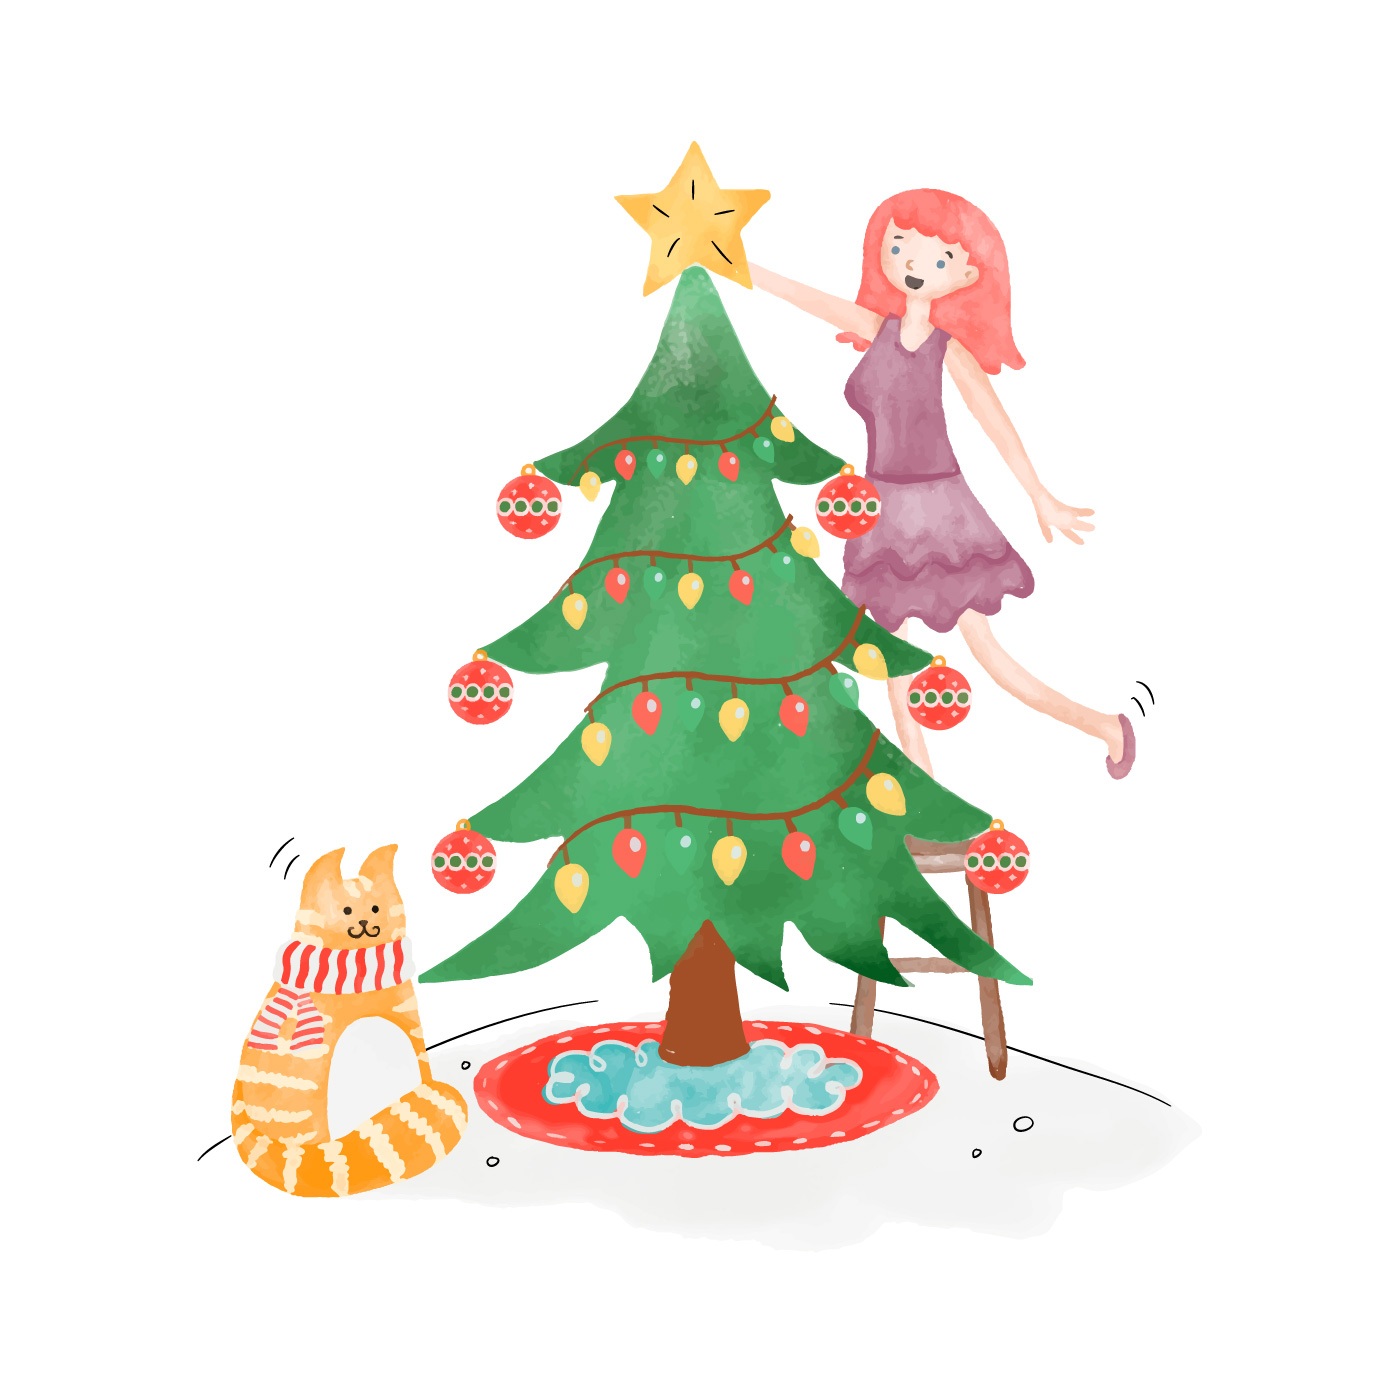 Cute Christmas Tree With Girl And Cat - Download Free ...